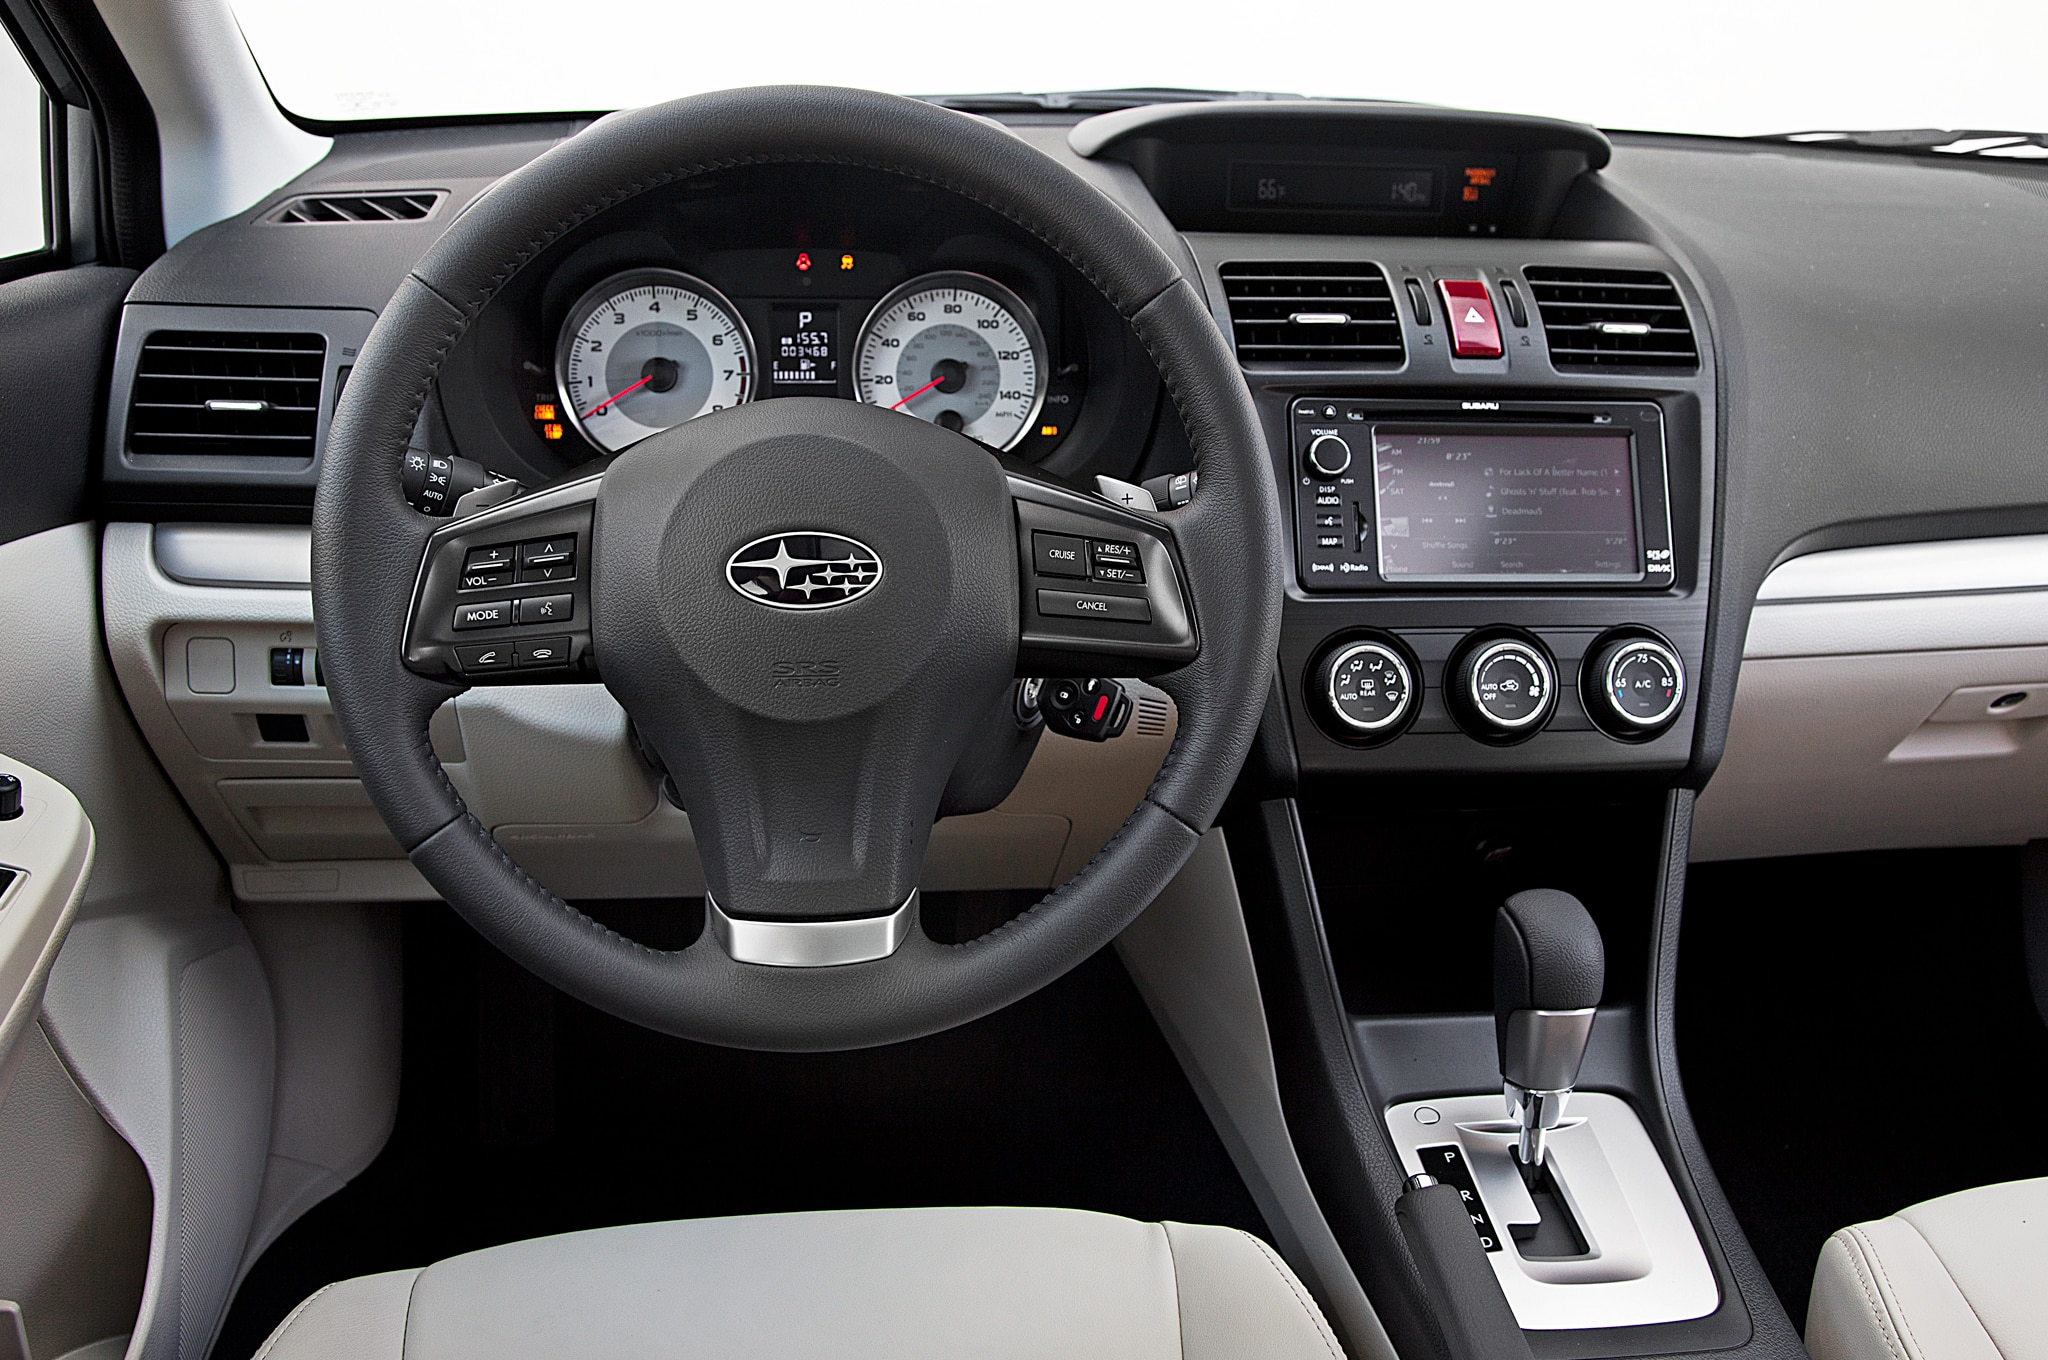 Recall Central: Faulty Nissan Rogue Steering Control Units